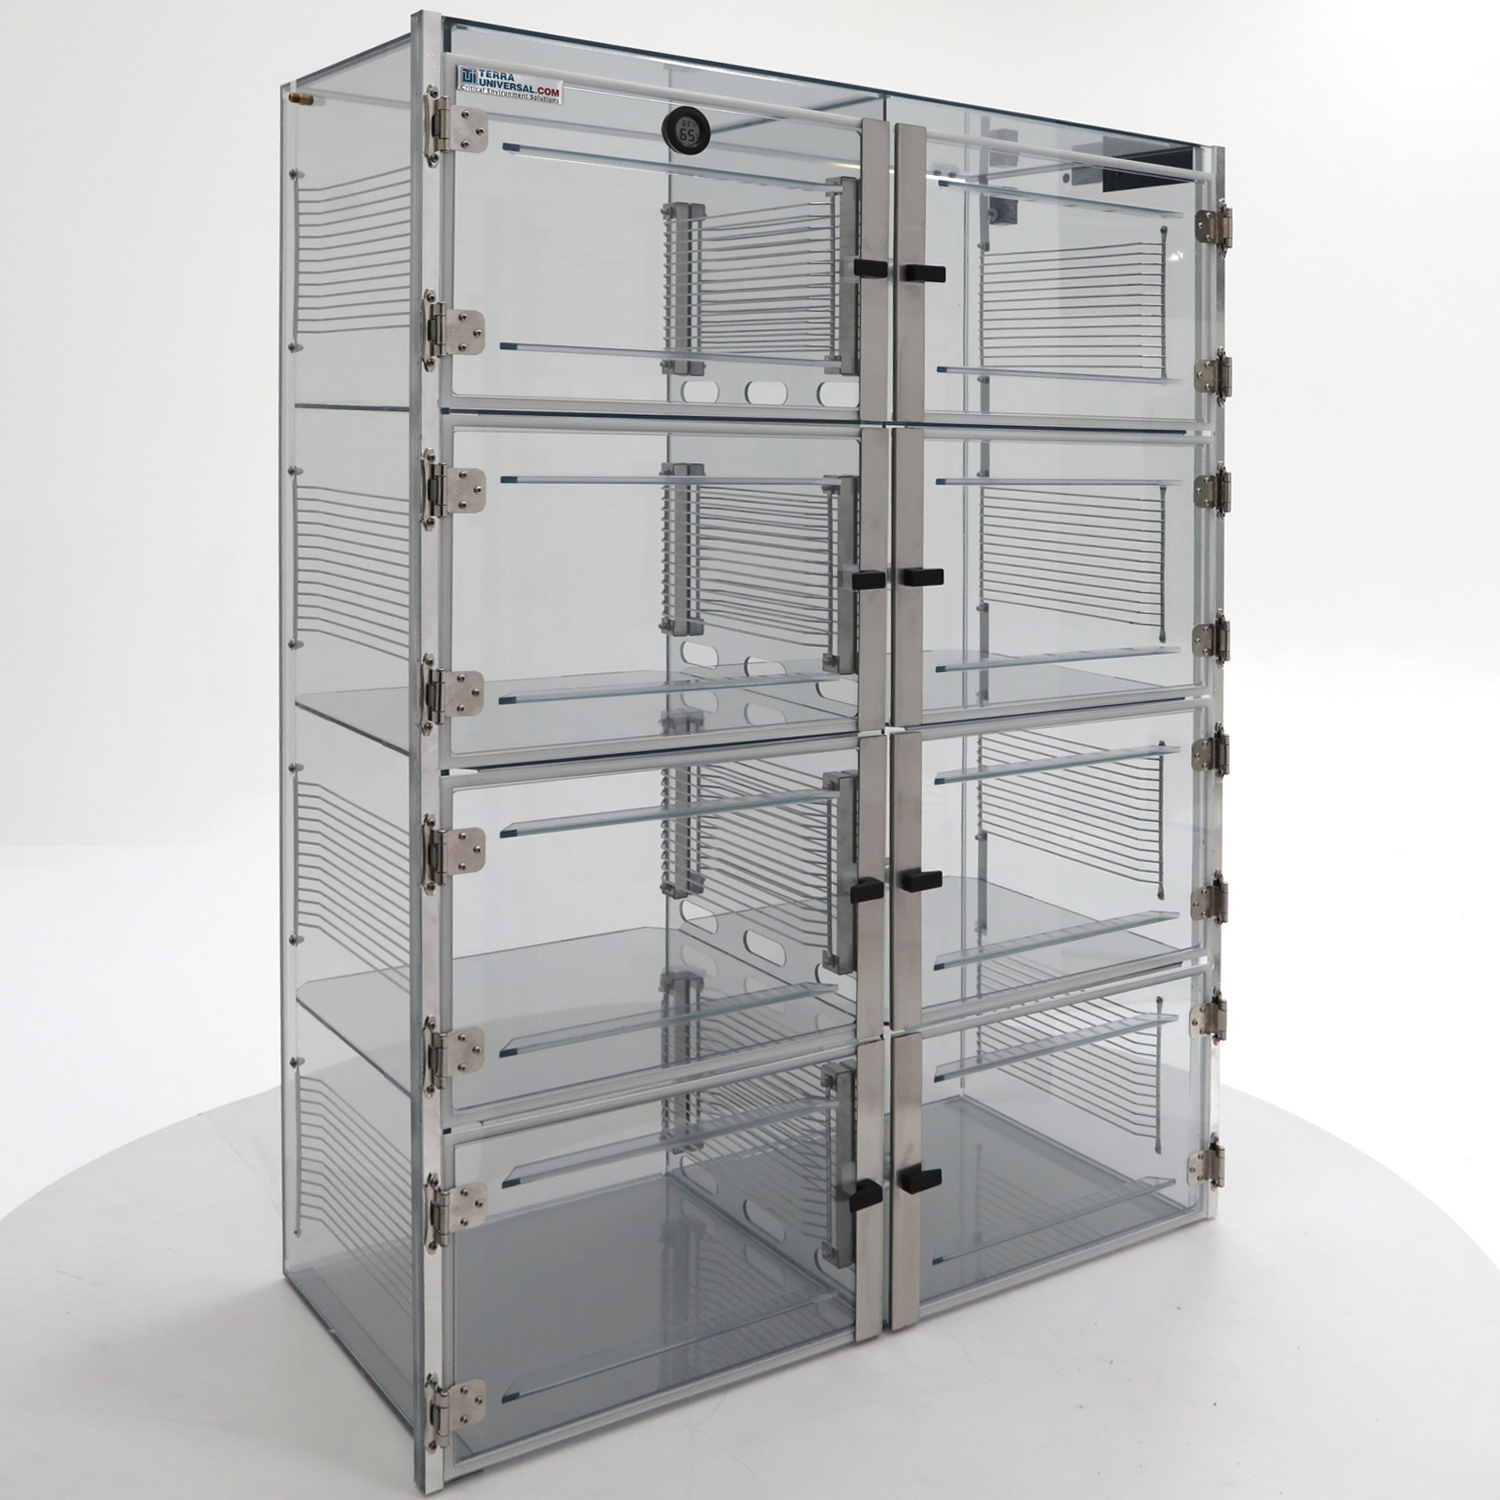 Static-safe desiccator cabinet in SDPVC with 8 chambers and adjustable shelving